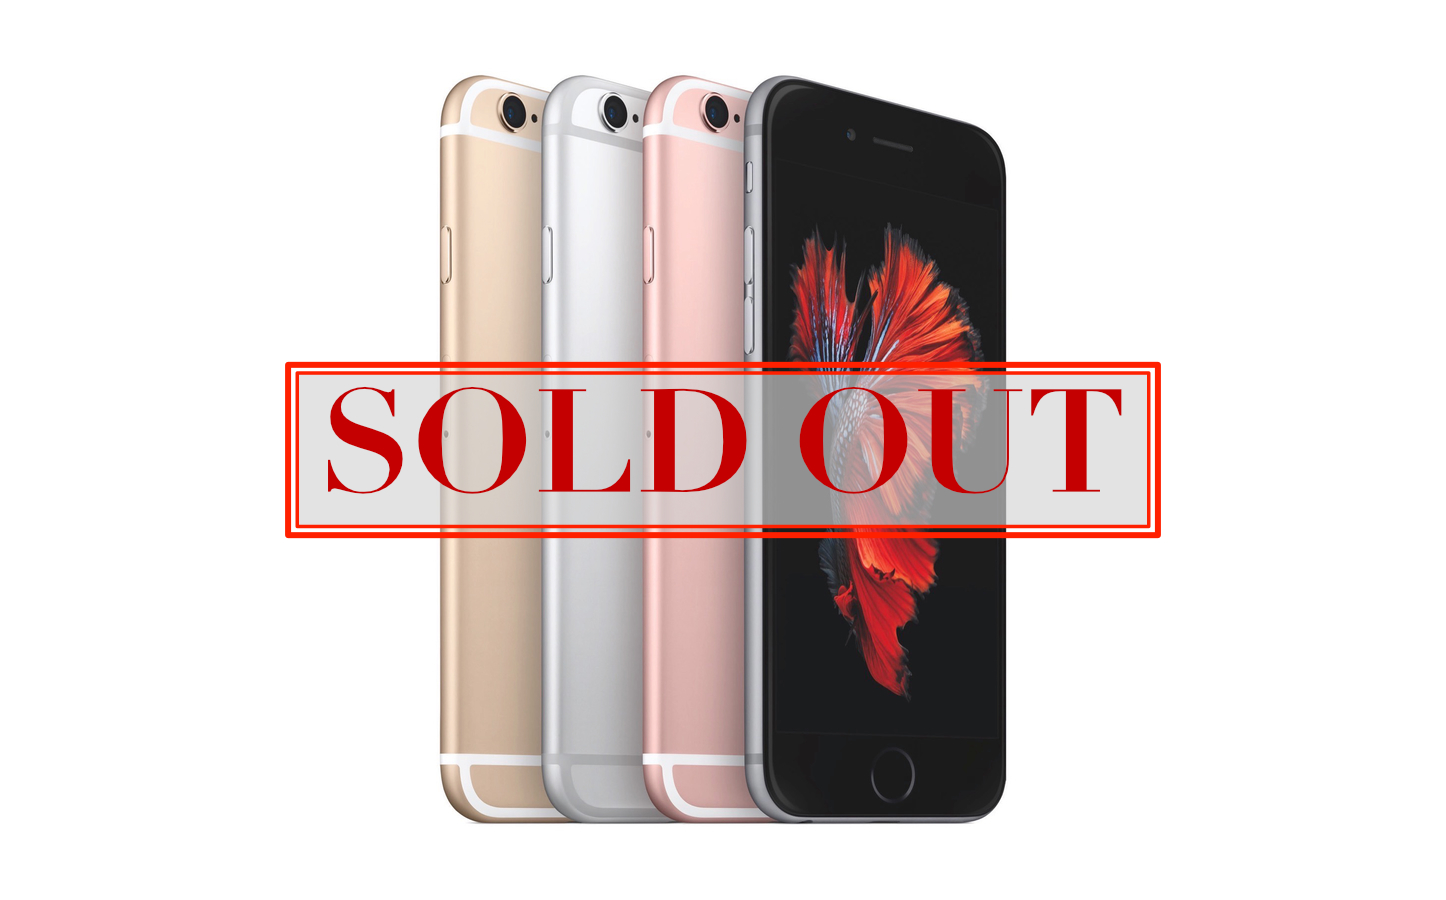 Iphone6s 6splus soldout